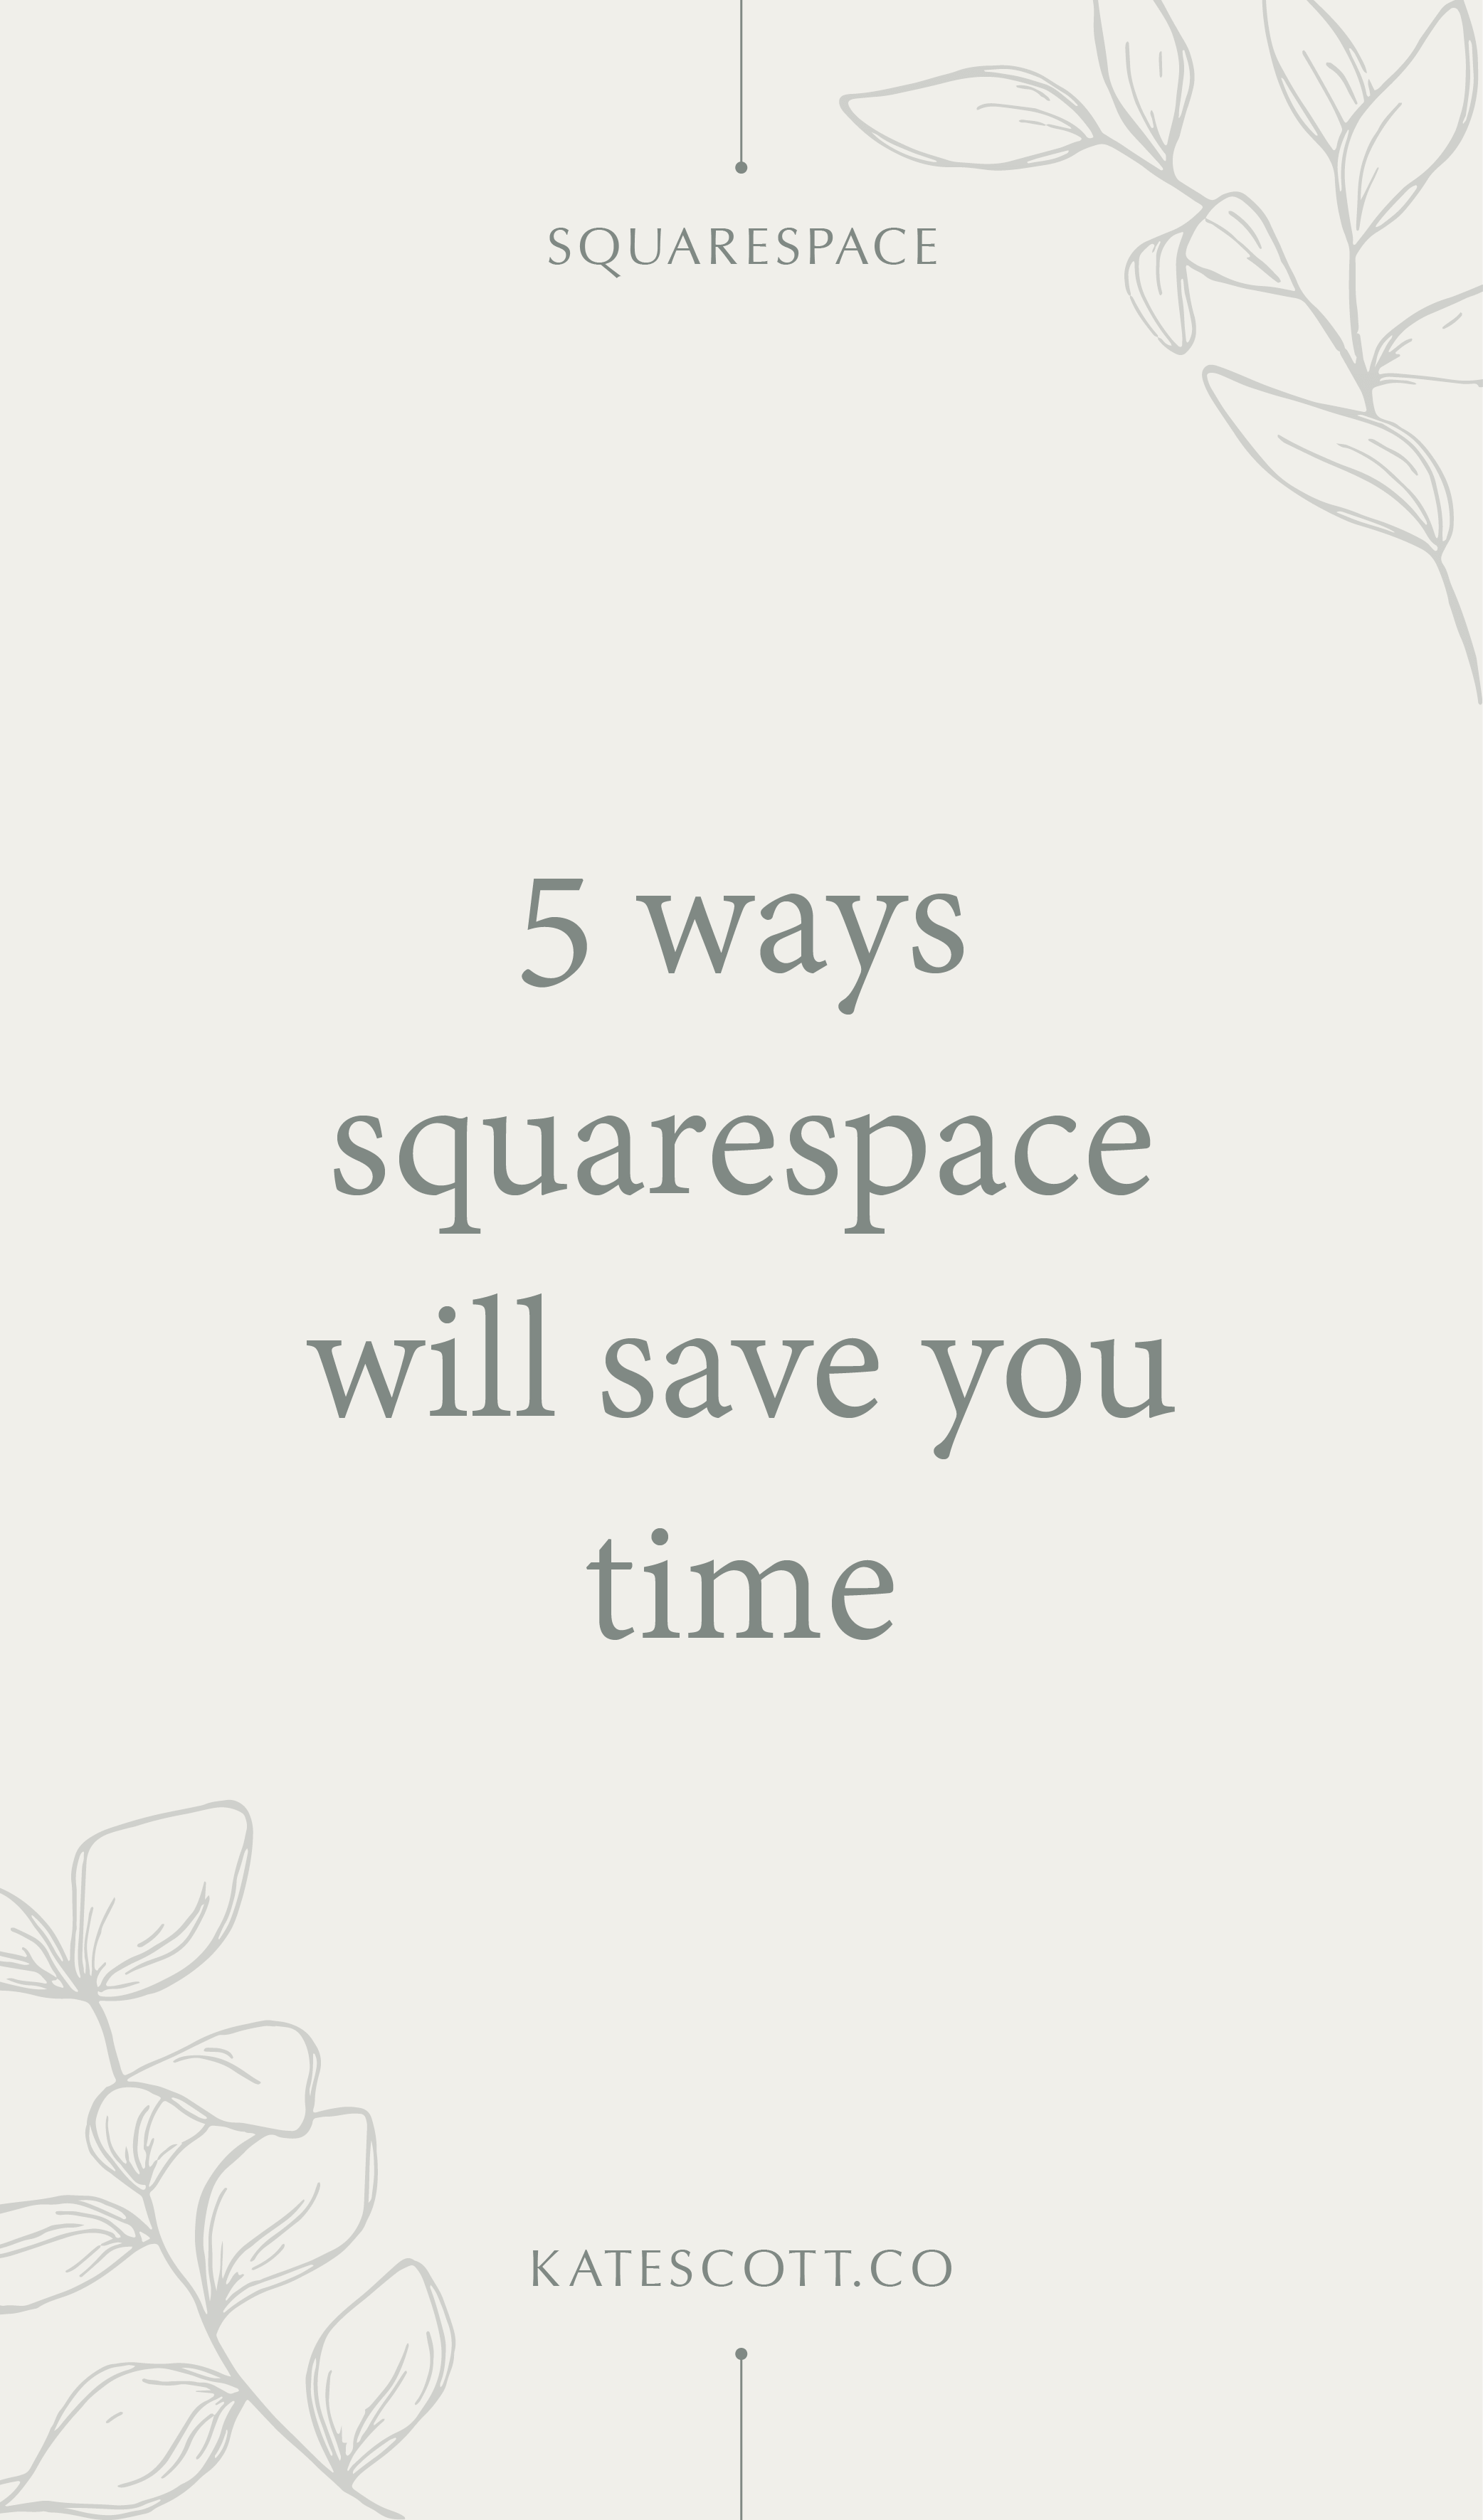 Wondering if you should go with Wordpress or Squarespace? Here are 5 ways Squarespace will save you time and make your life a whole lot easier. | Squarespace for Beginners | Squarespace for Business | Squarespace for Blogging | Save Time Tips | Productivity Tips for Business Owners | Wordpress vs Squarespace | #entrepreneur #squarespace